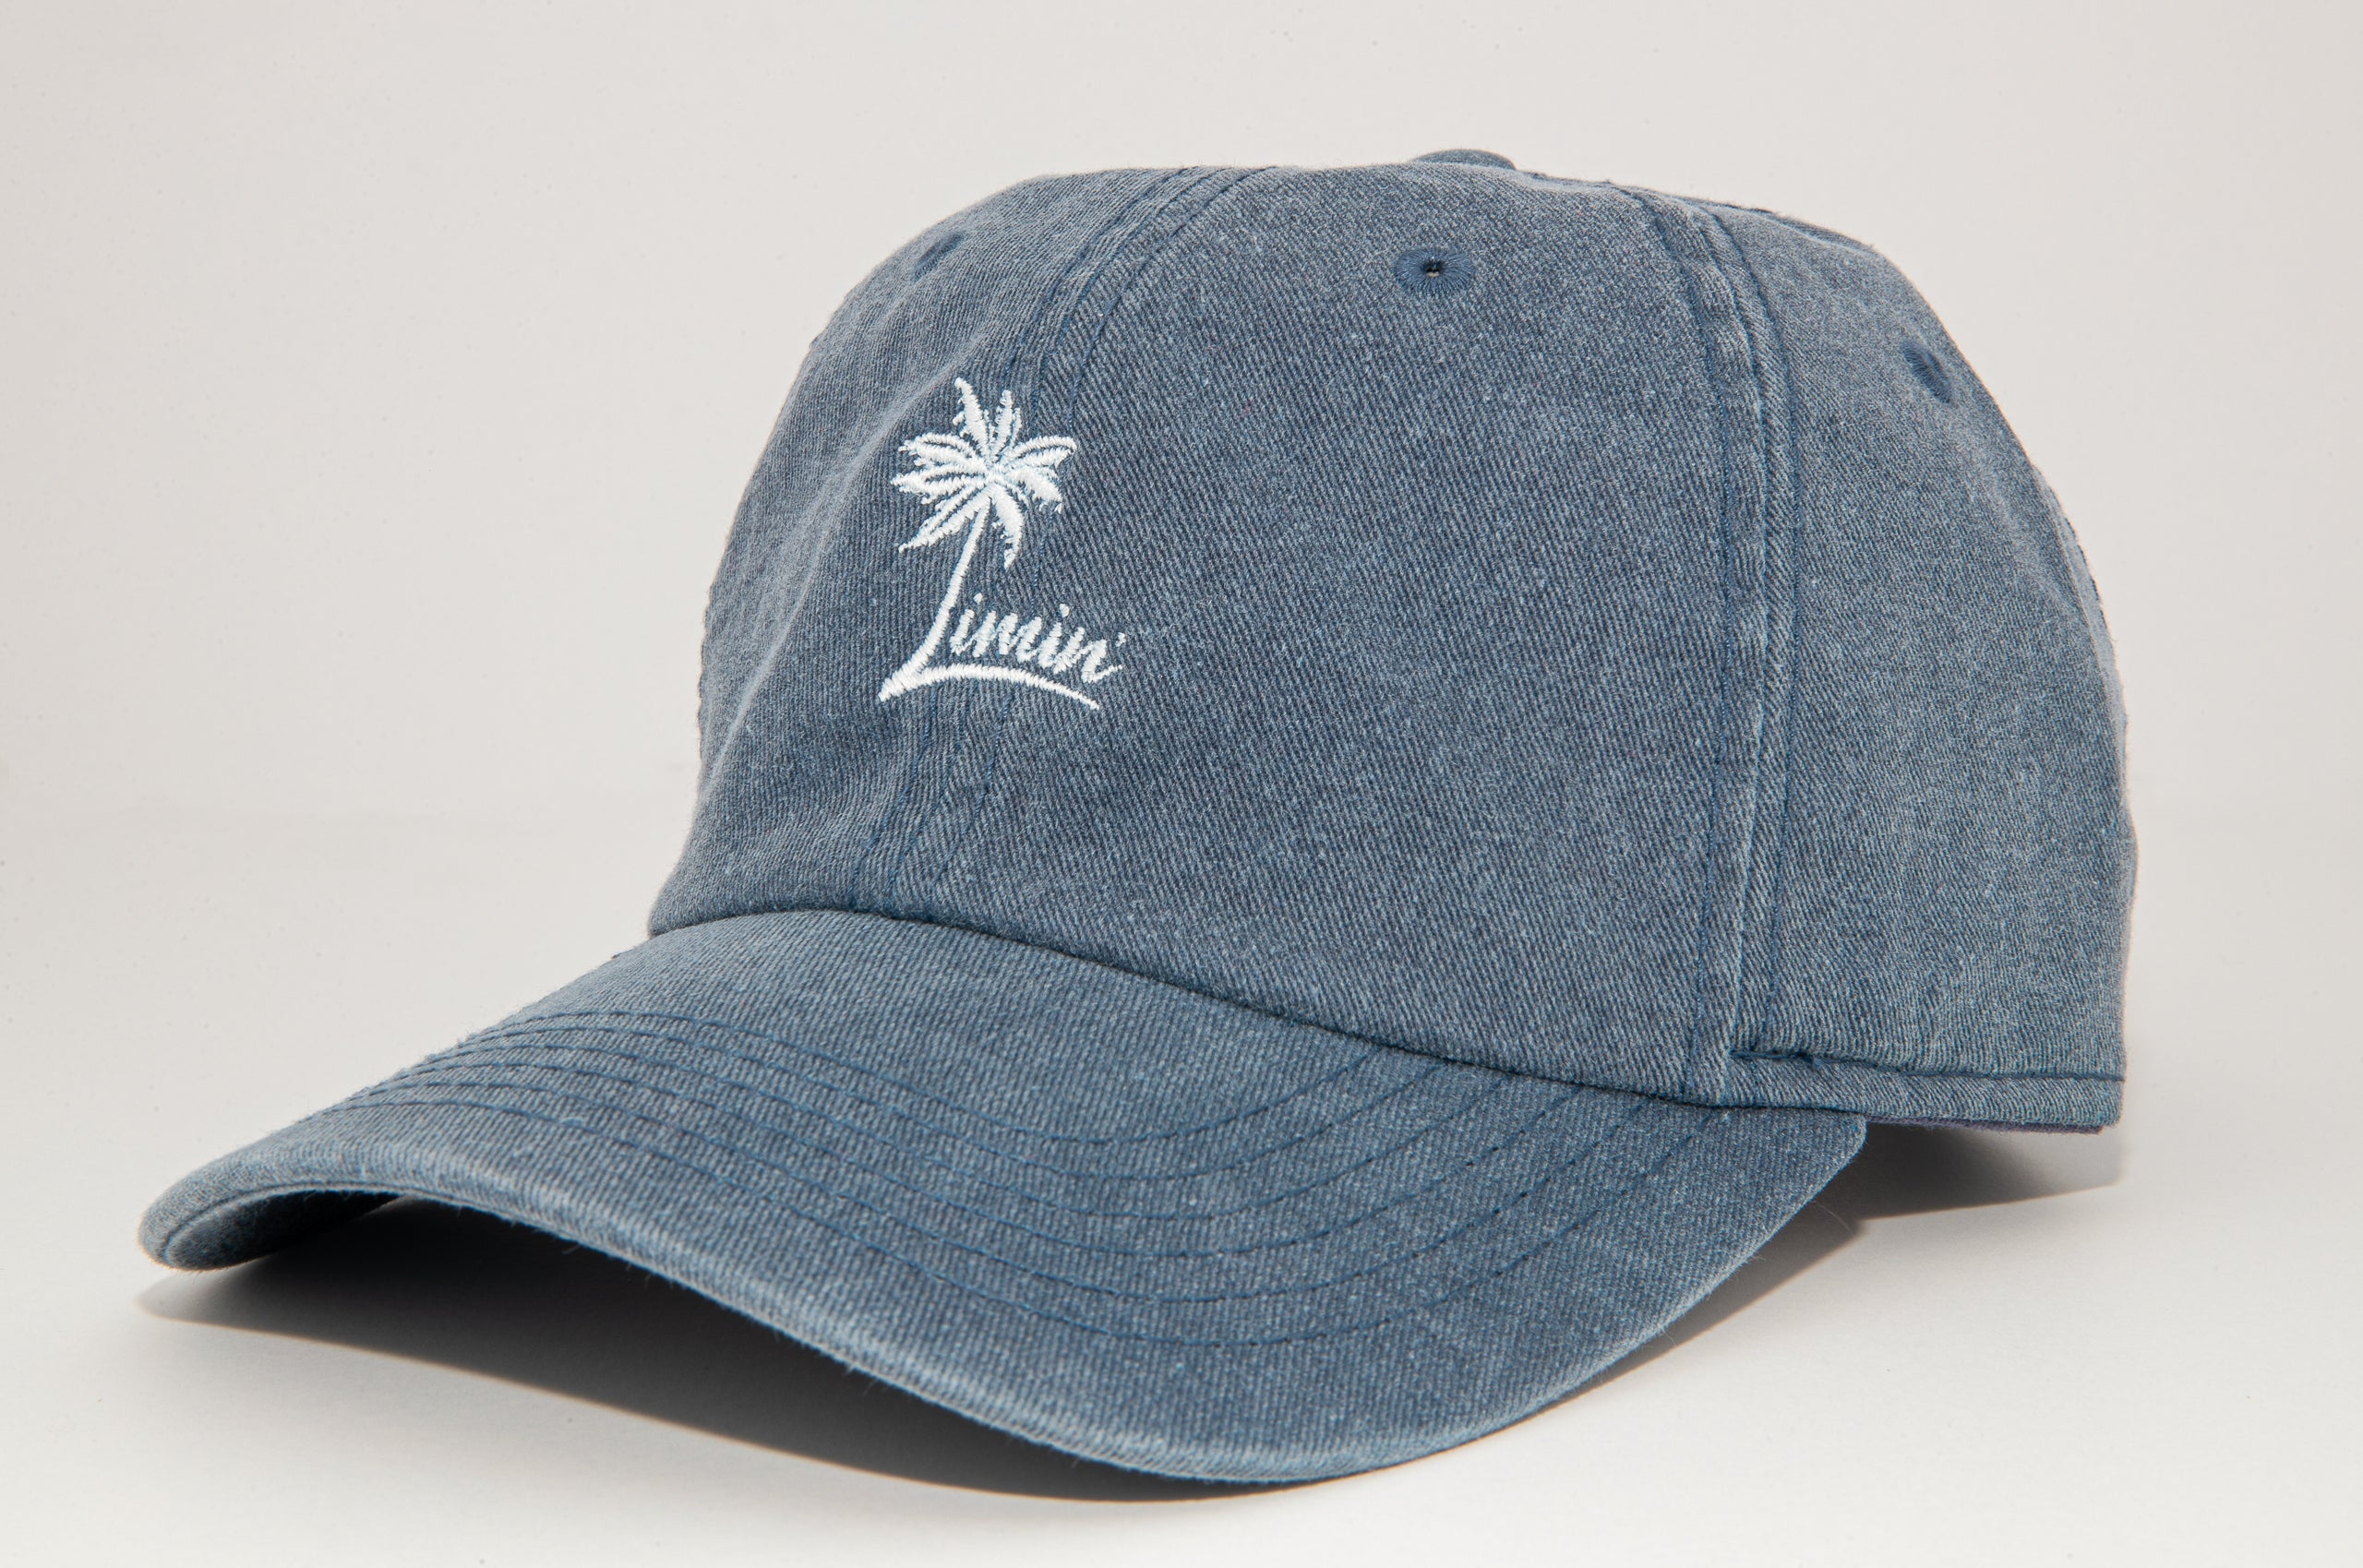 Weathered Boater's Cap (Small Fit)